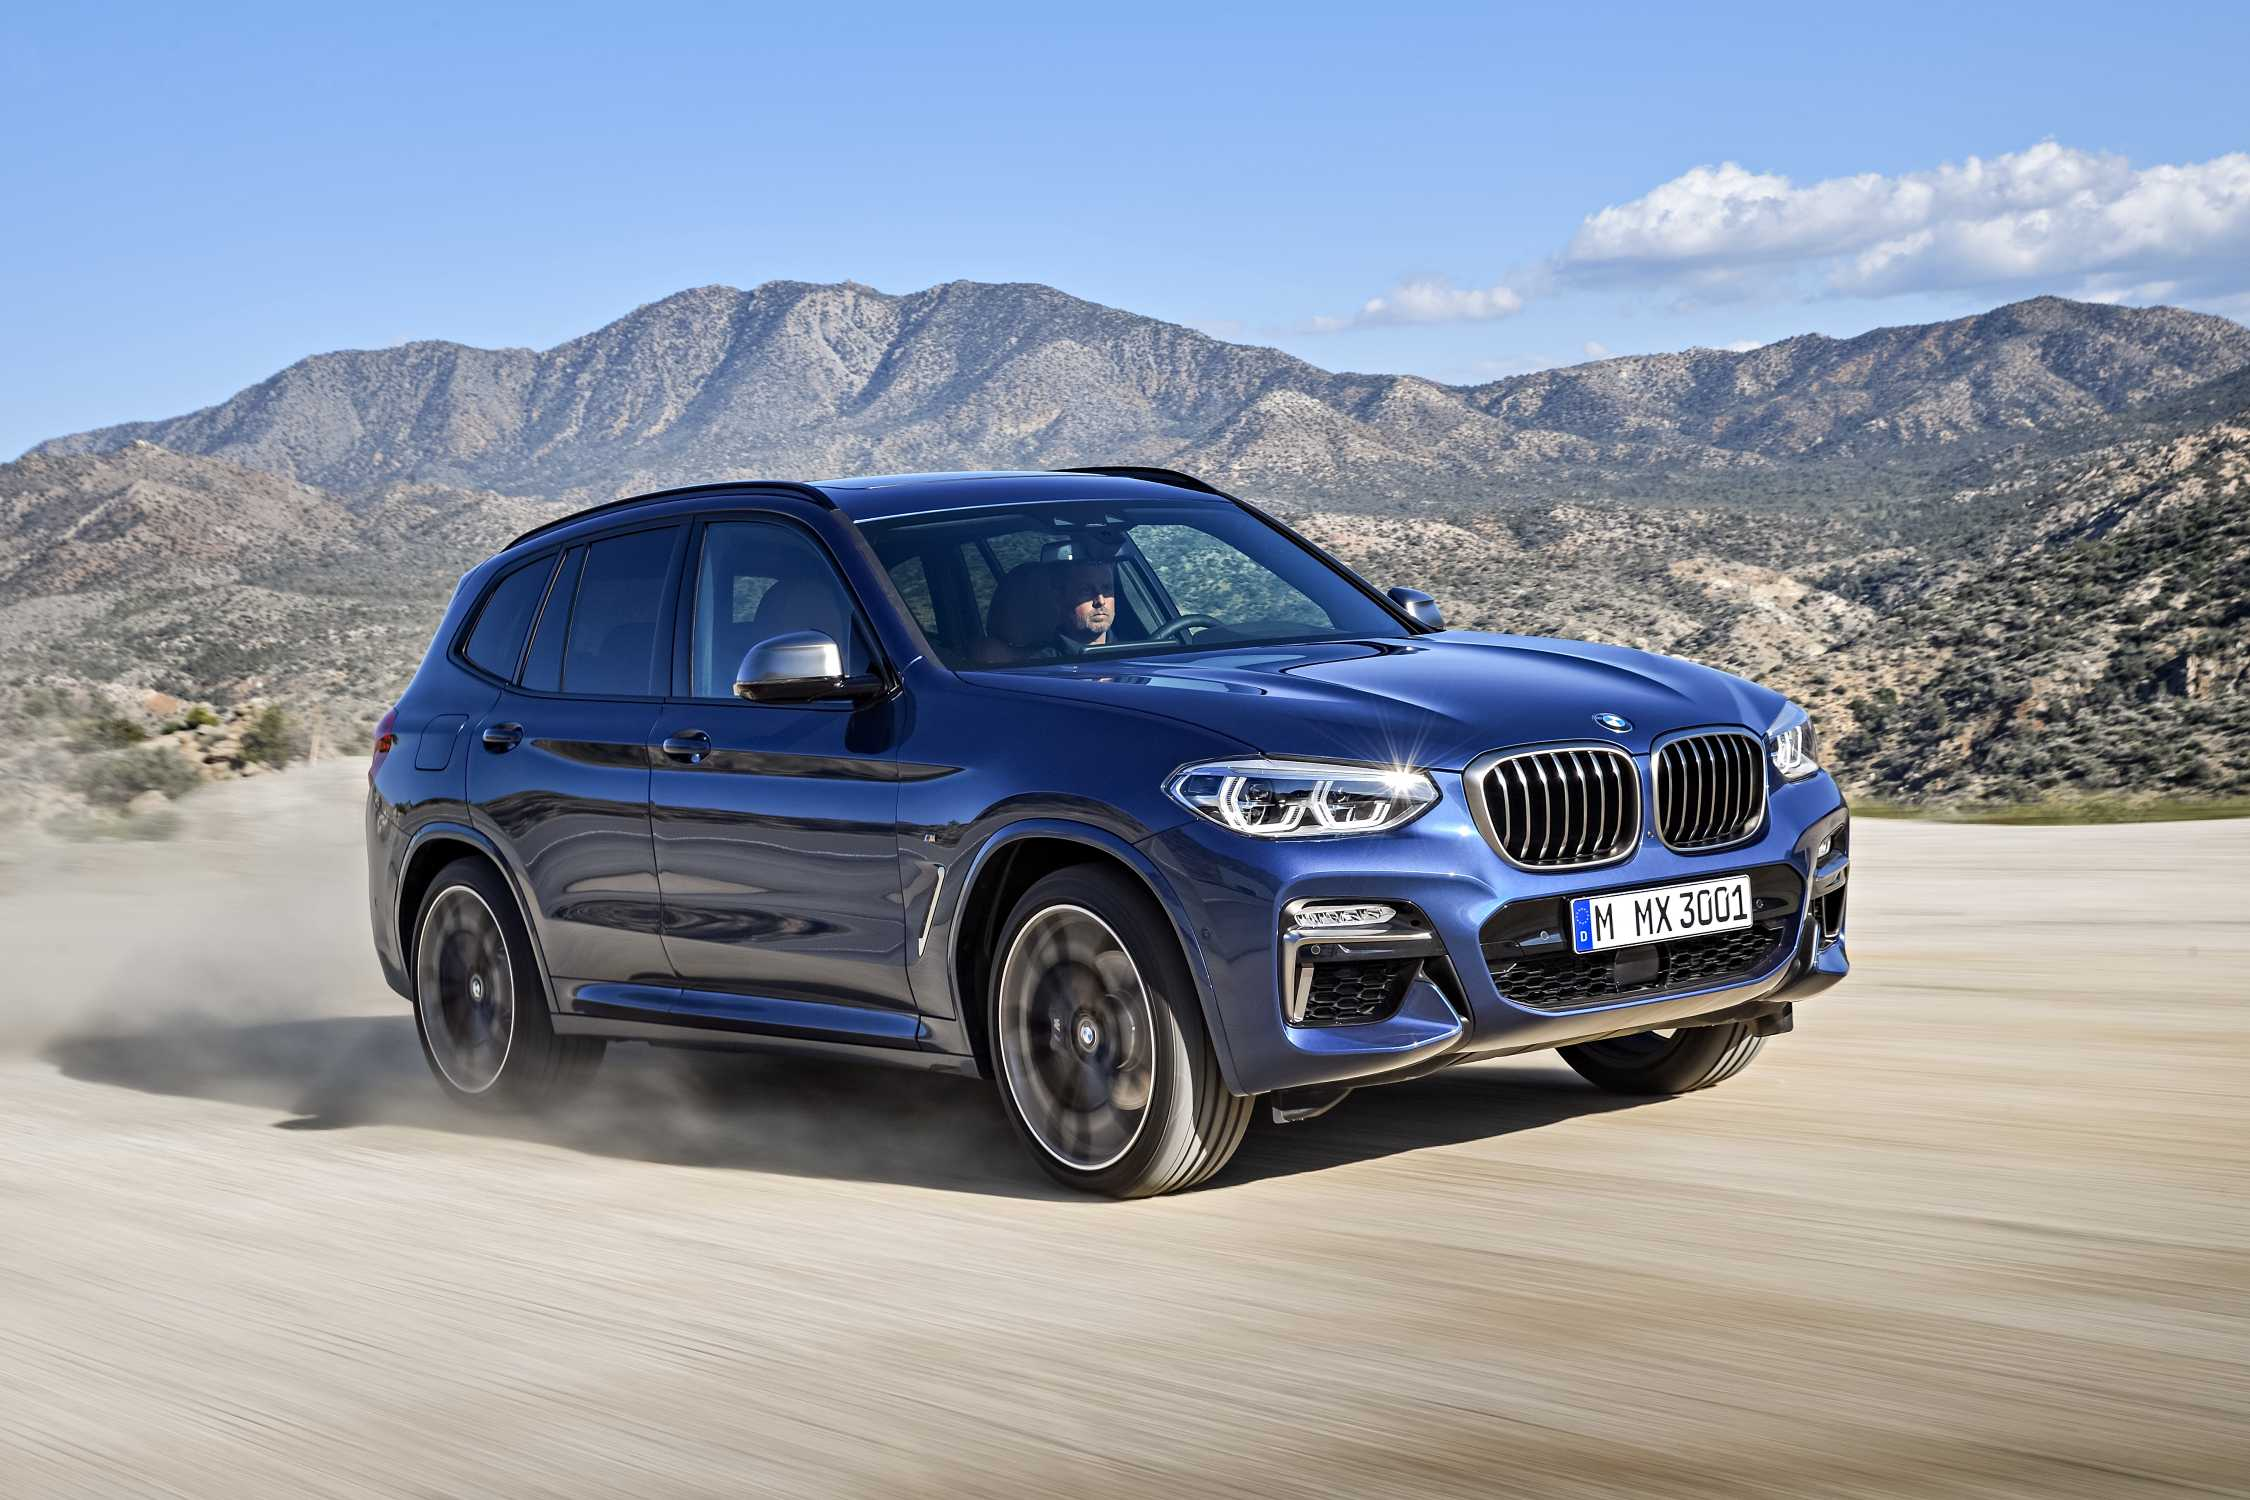 The New Bmw X3 Xdrive M40i Exterior Color Phytonic Blue